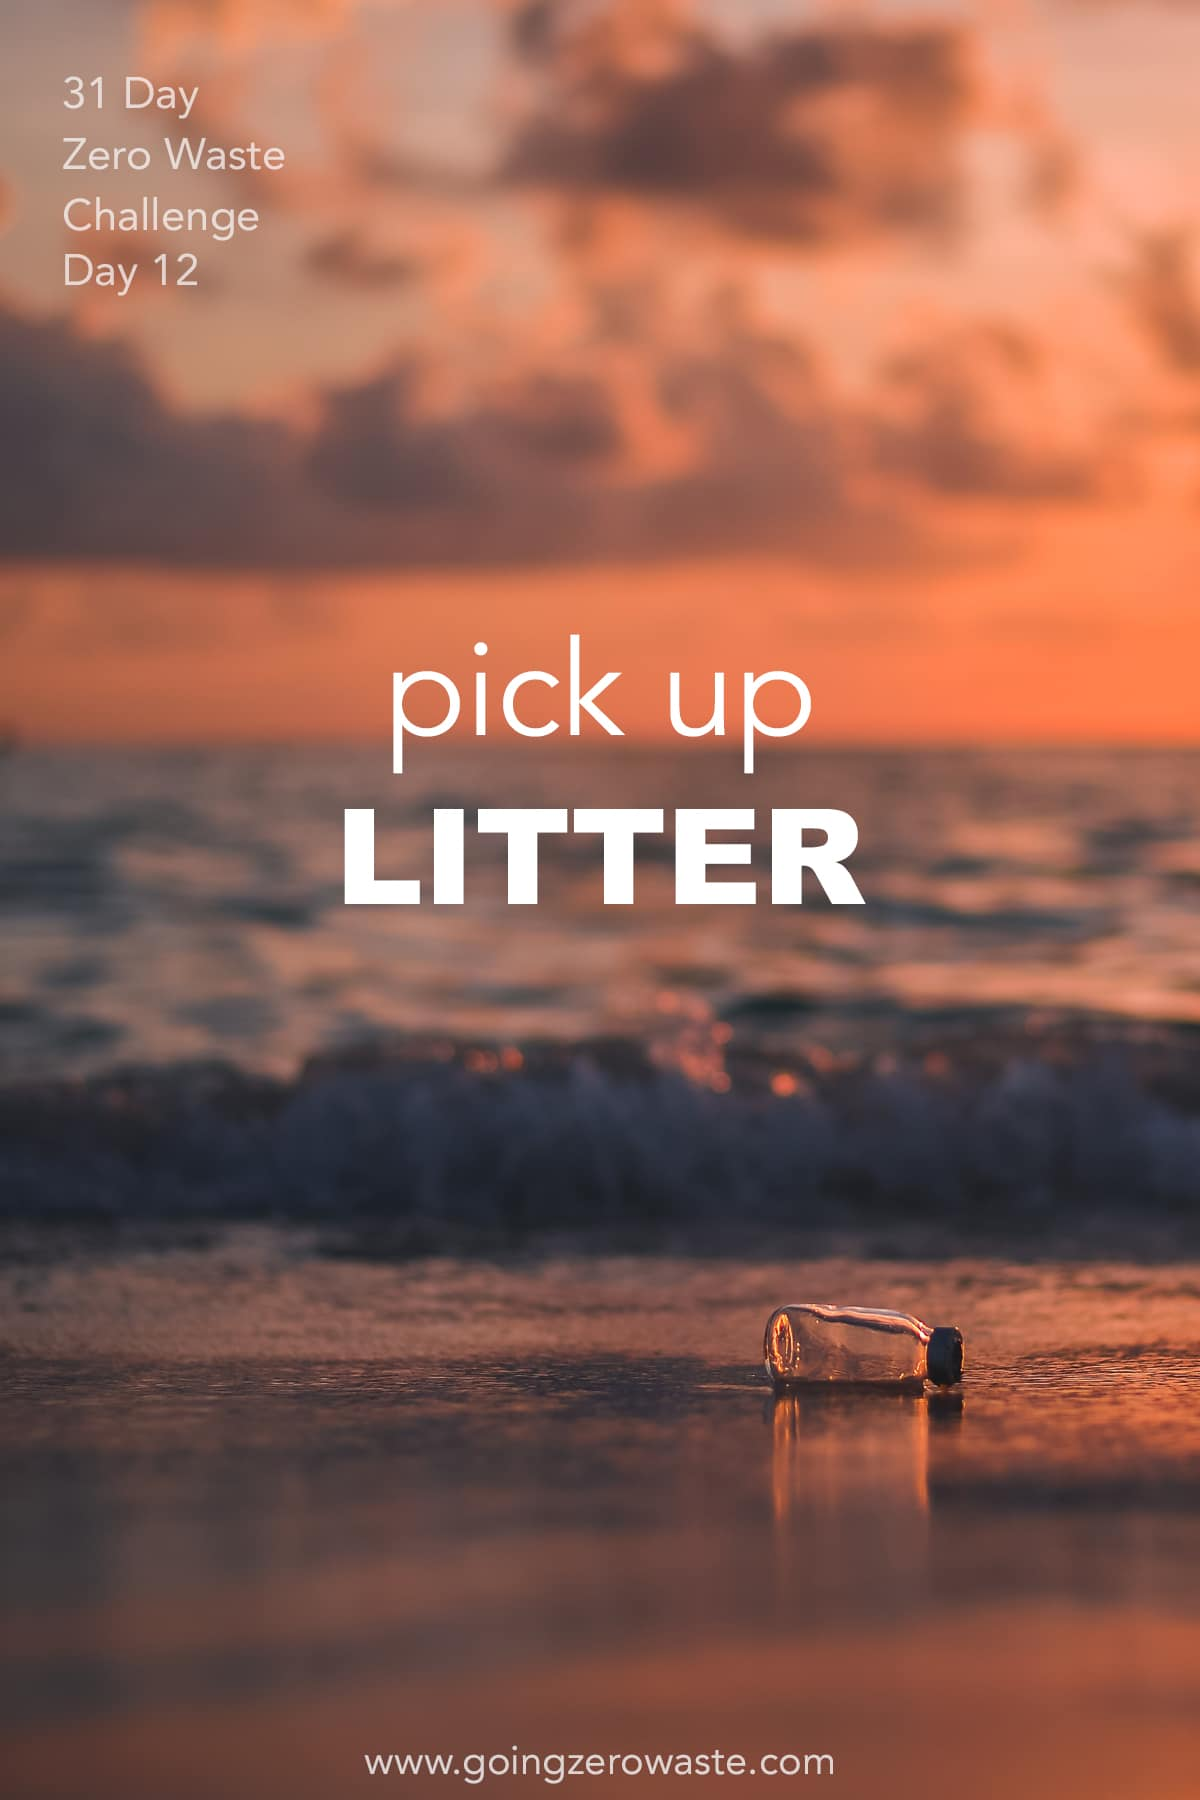 Pick up Litter - Day 12 of the Zero Waste Challenge from www.goingzerowaste.com #zerowaste #ecofriendly #gogreen #sustainable #zerowastechallenge #challenge #sustainablelivingchallenge #pickuplitter